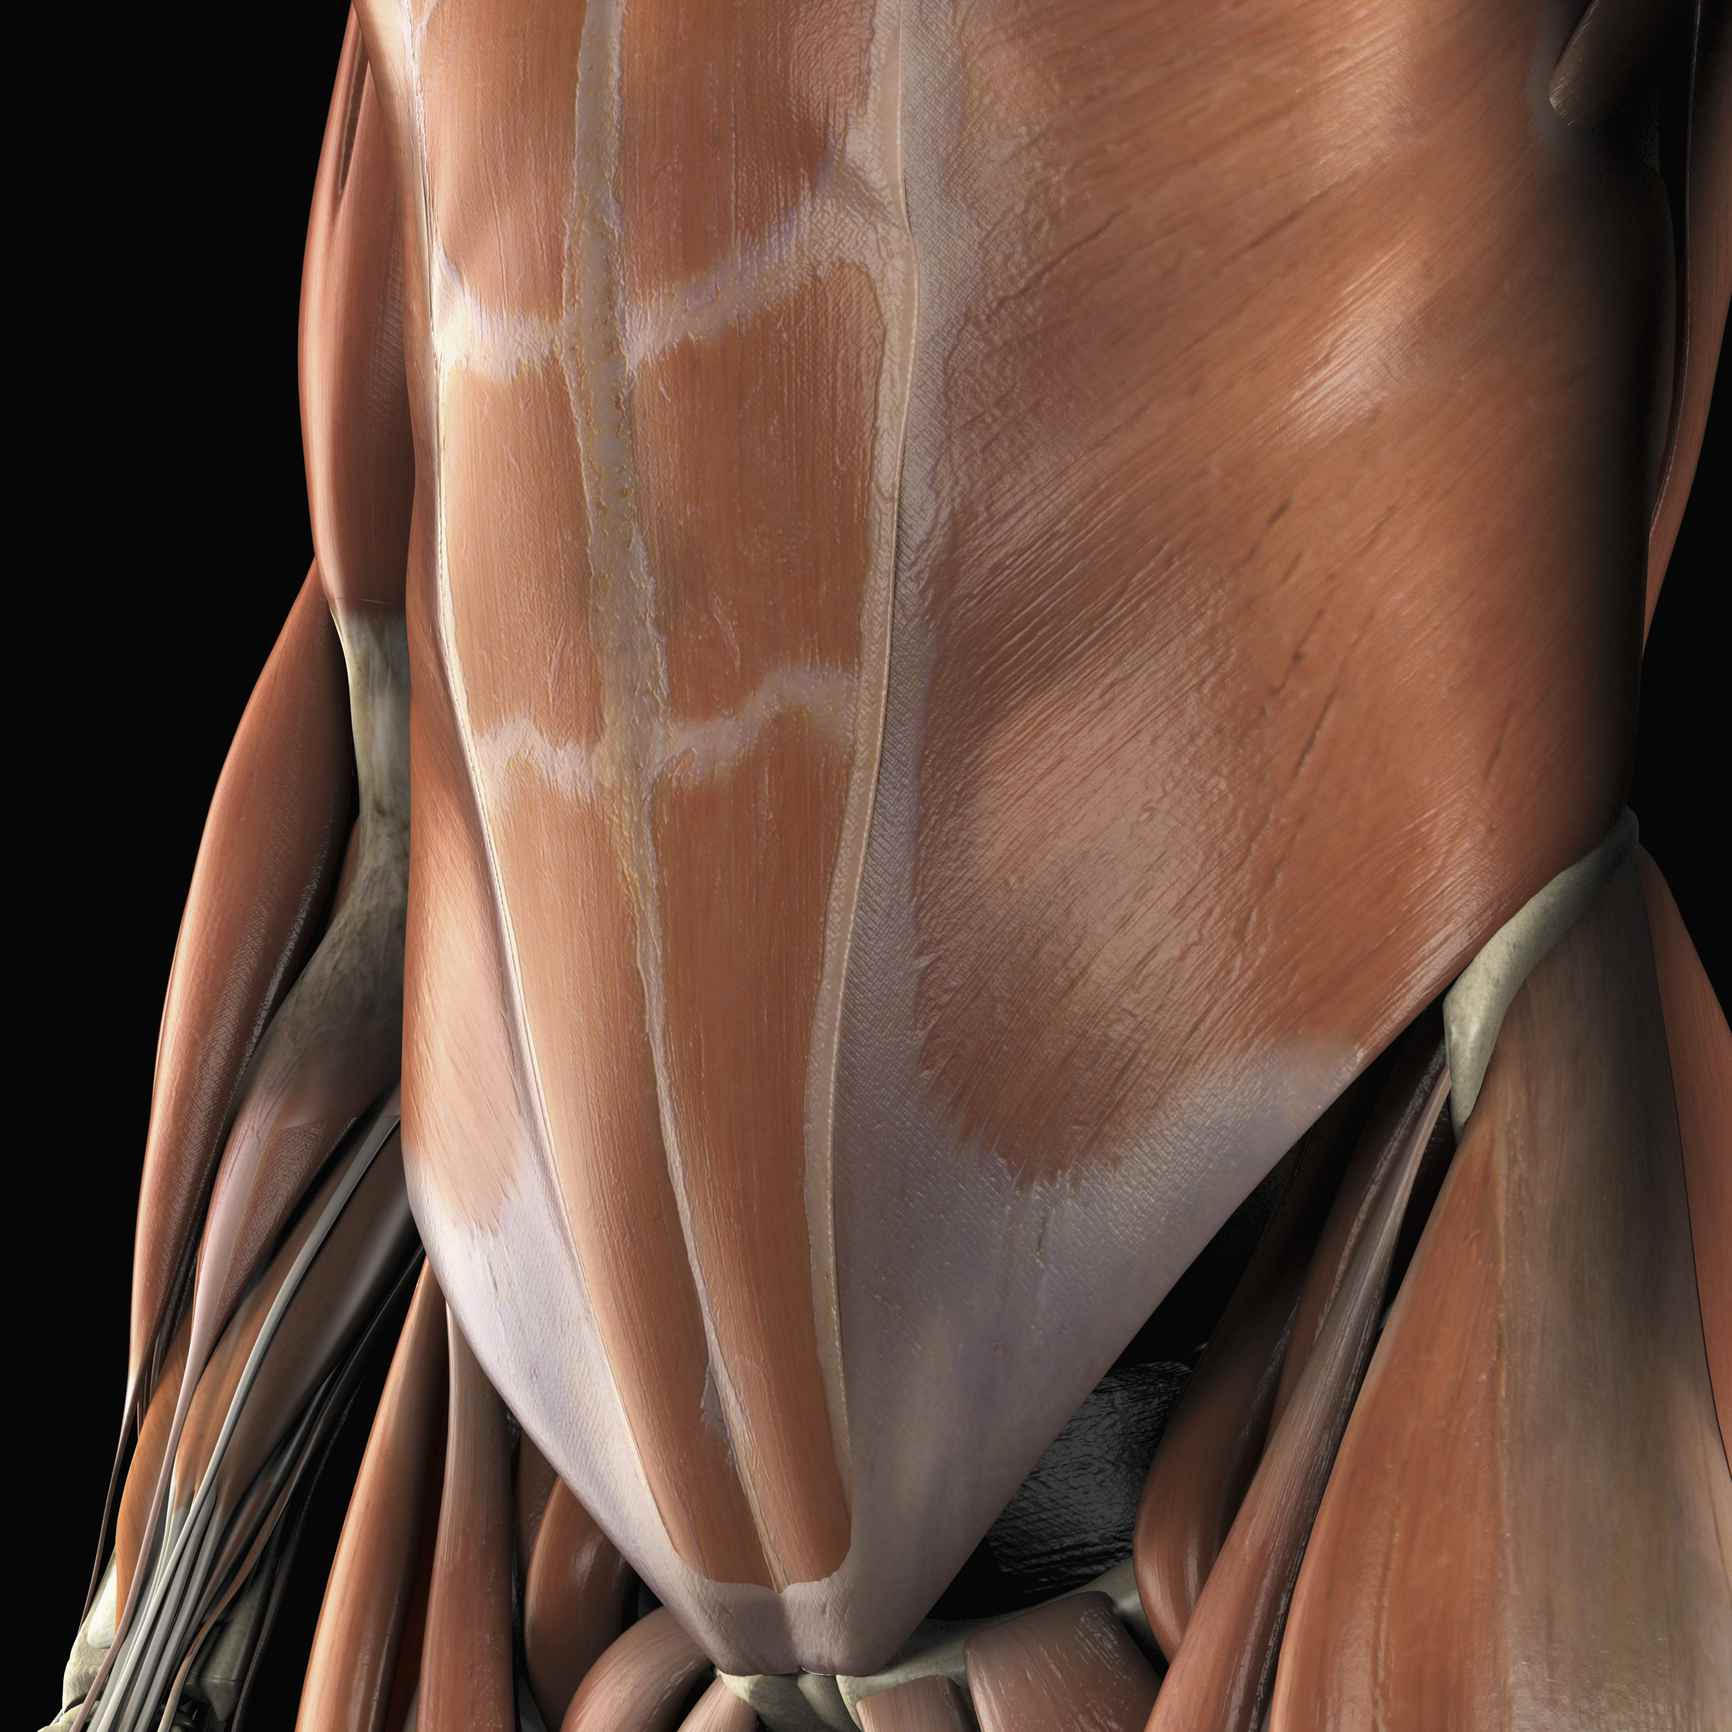 6 Exercises to Relieve Lower Back Pain